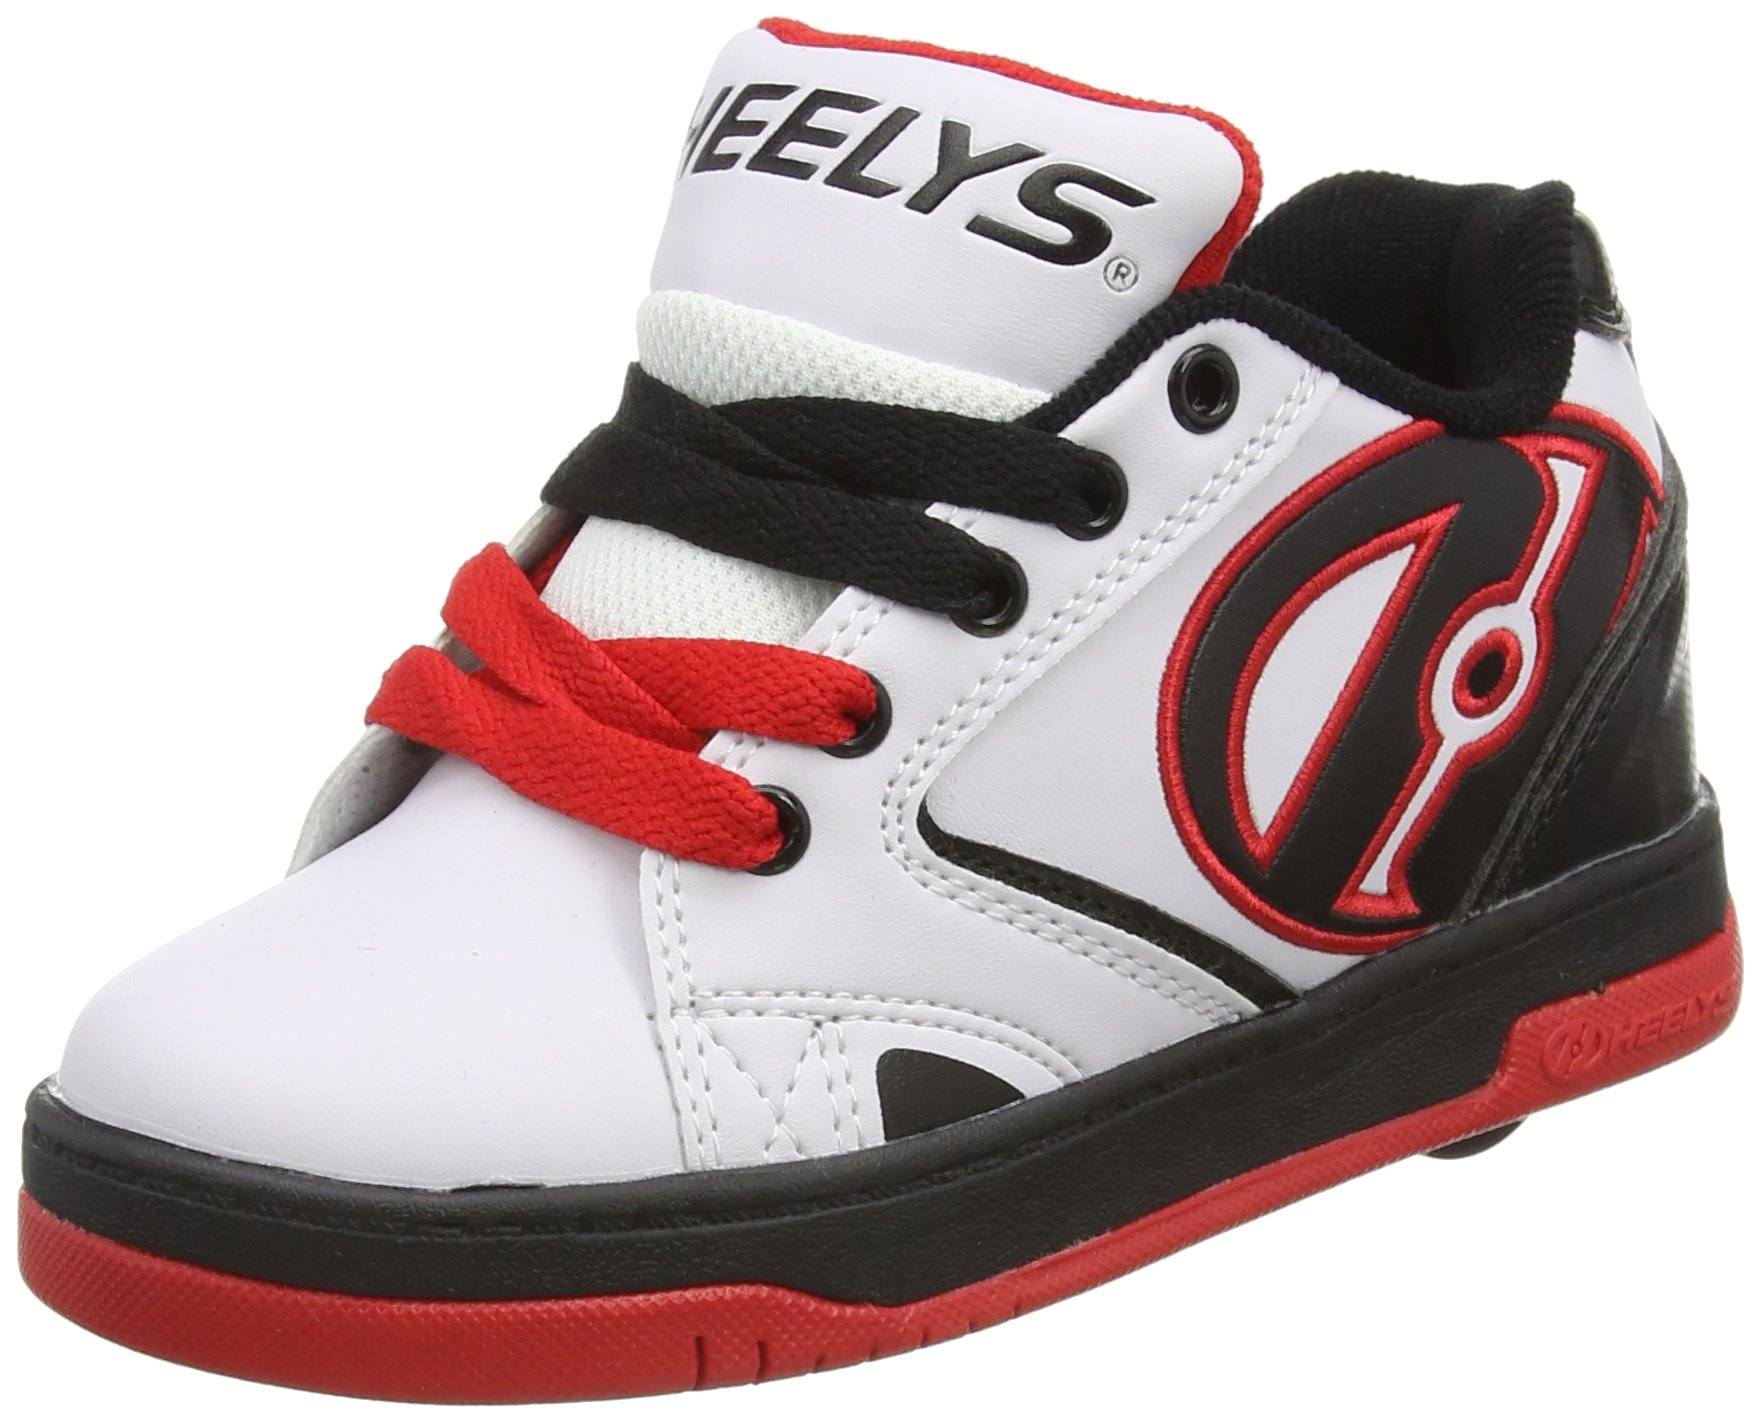 Heelys Propel 2.0 Sneaker (Little Kid/Big Kid), White/Black/Red, 13 M US Little Kid by Heelys